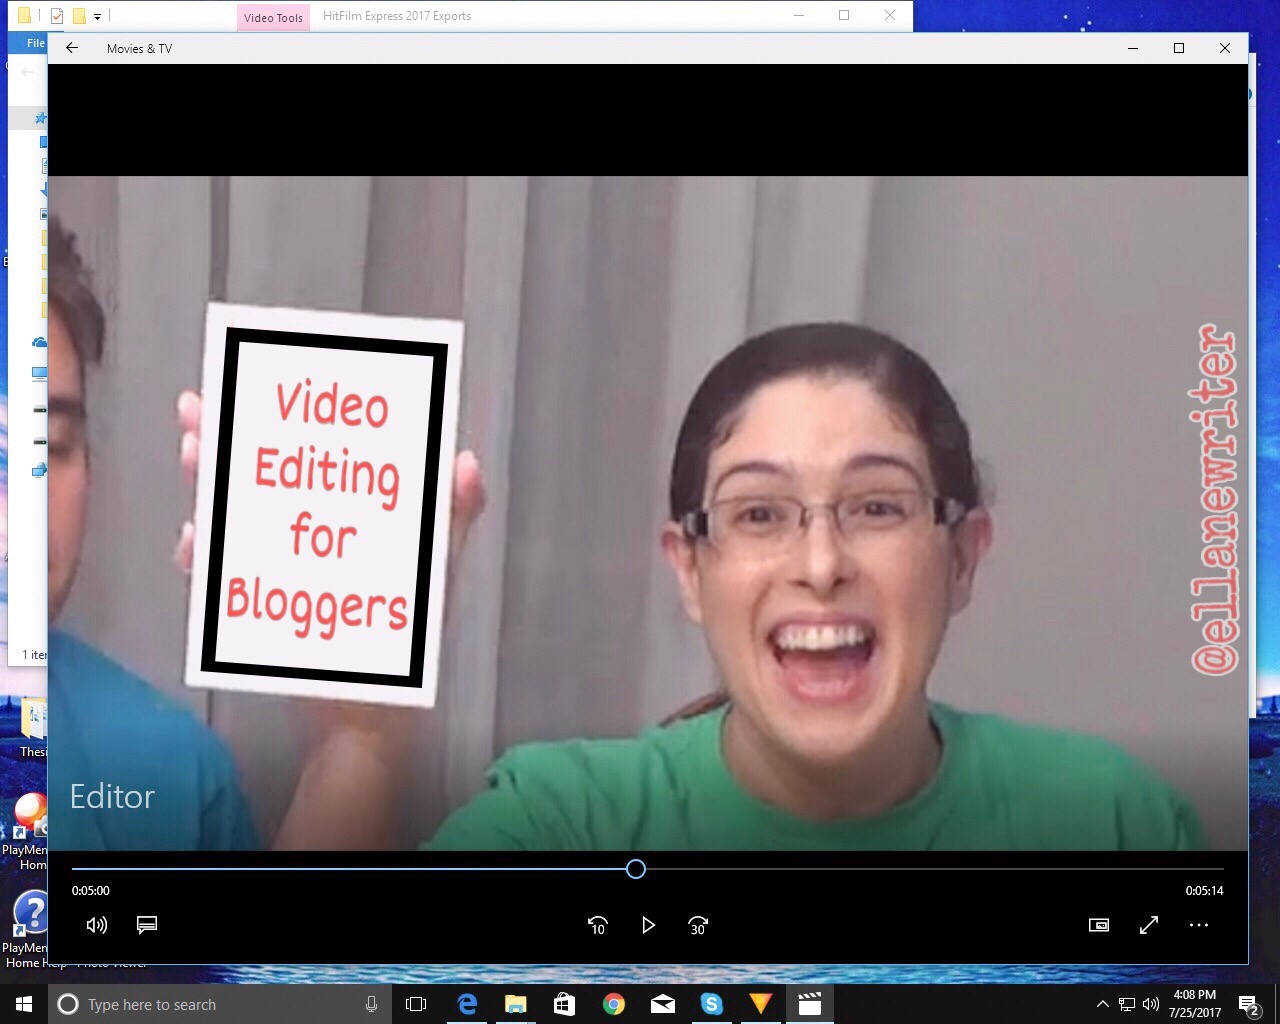 A window is open on a computer screen. The window shows an enthusiastic E. L. Lane holding a card that reads Video Editing for Bloggers.